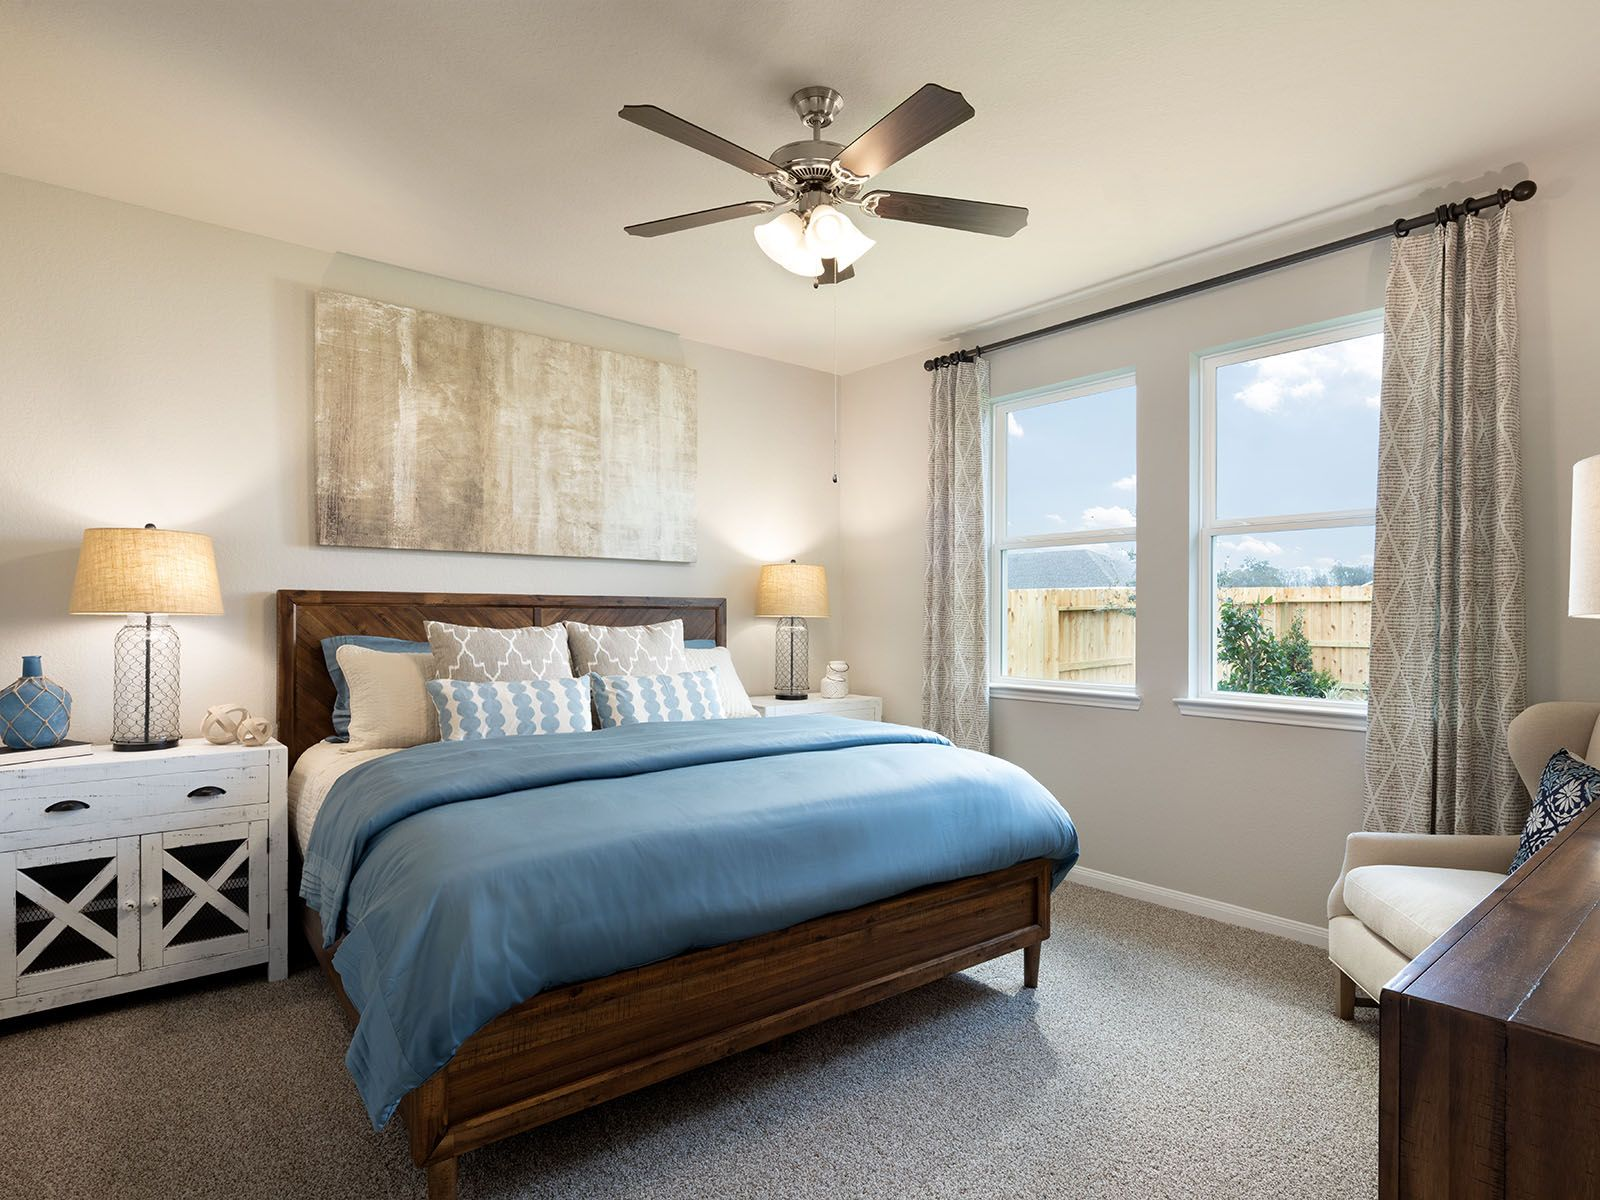 Bedroom featured in The Everglade (N303) By Meritage Homes in Houston, TX